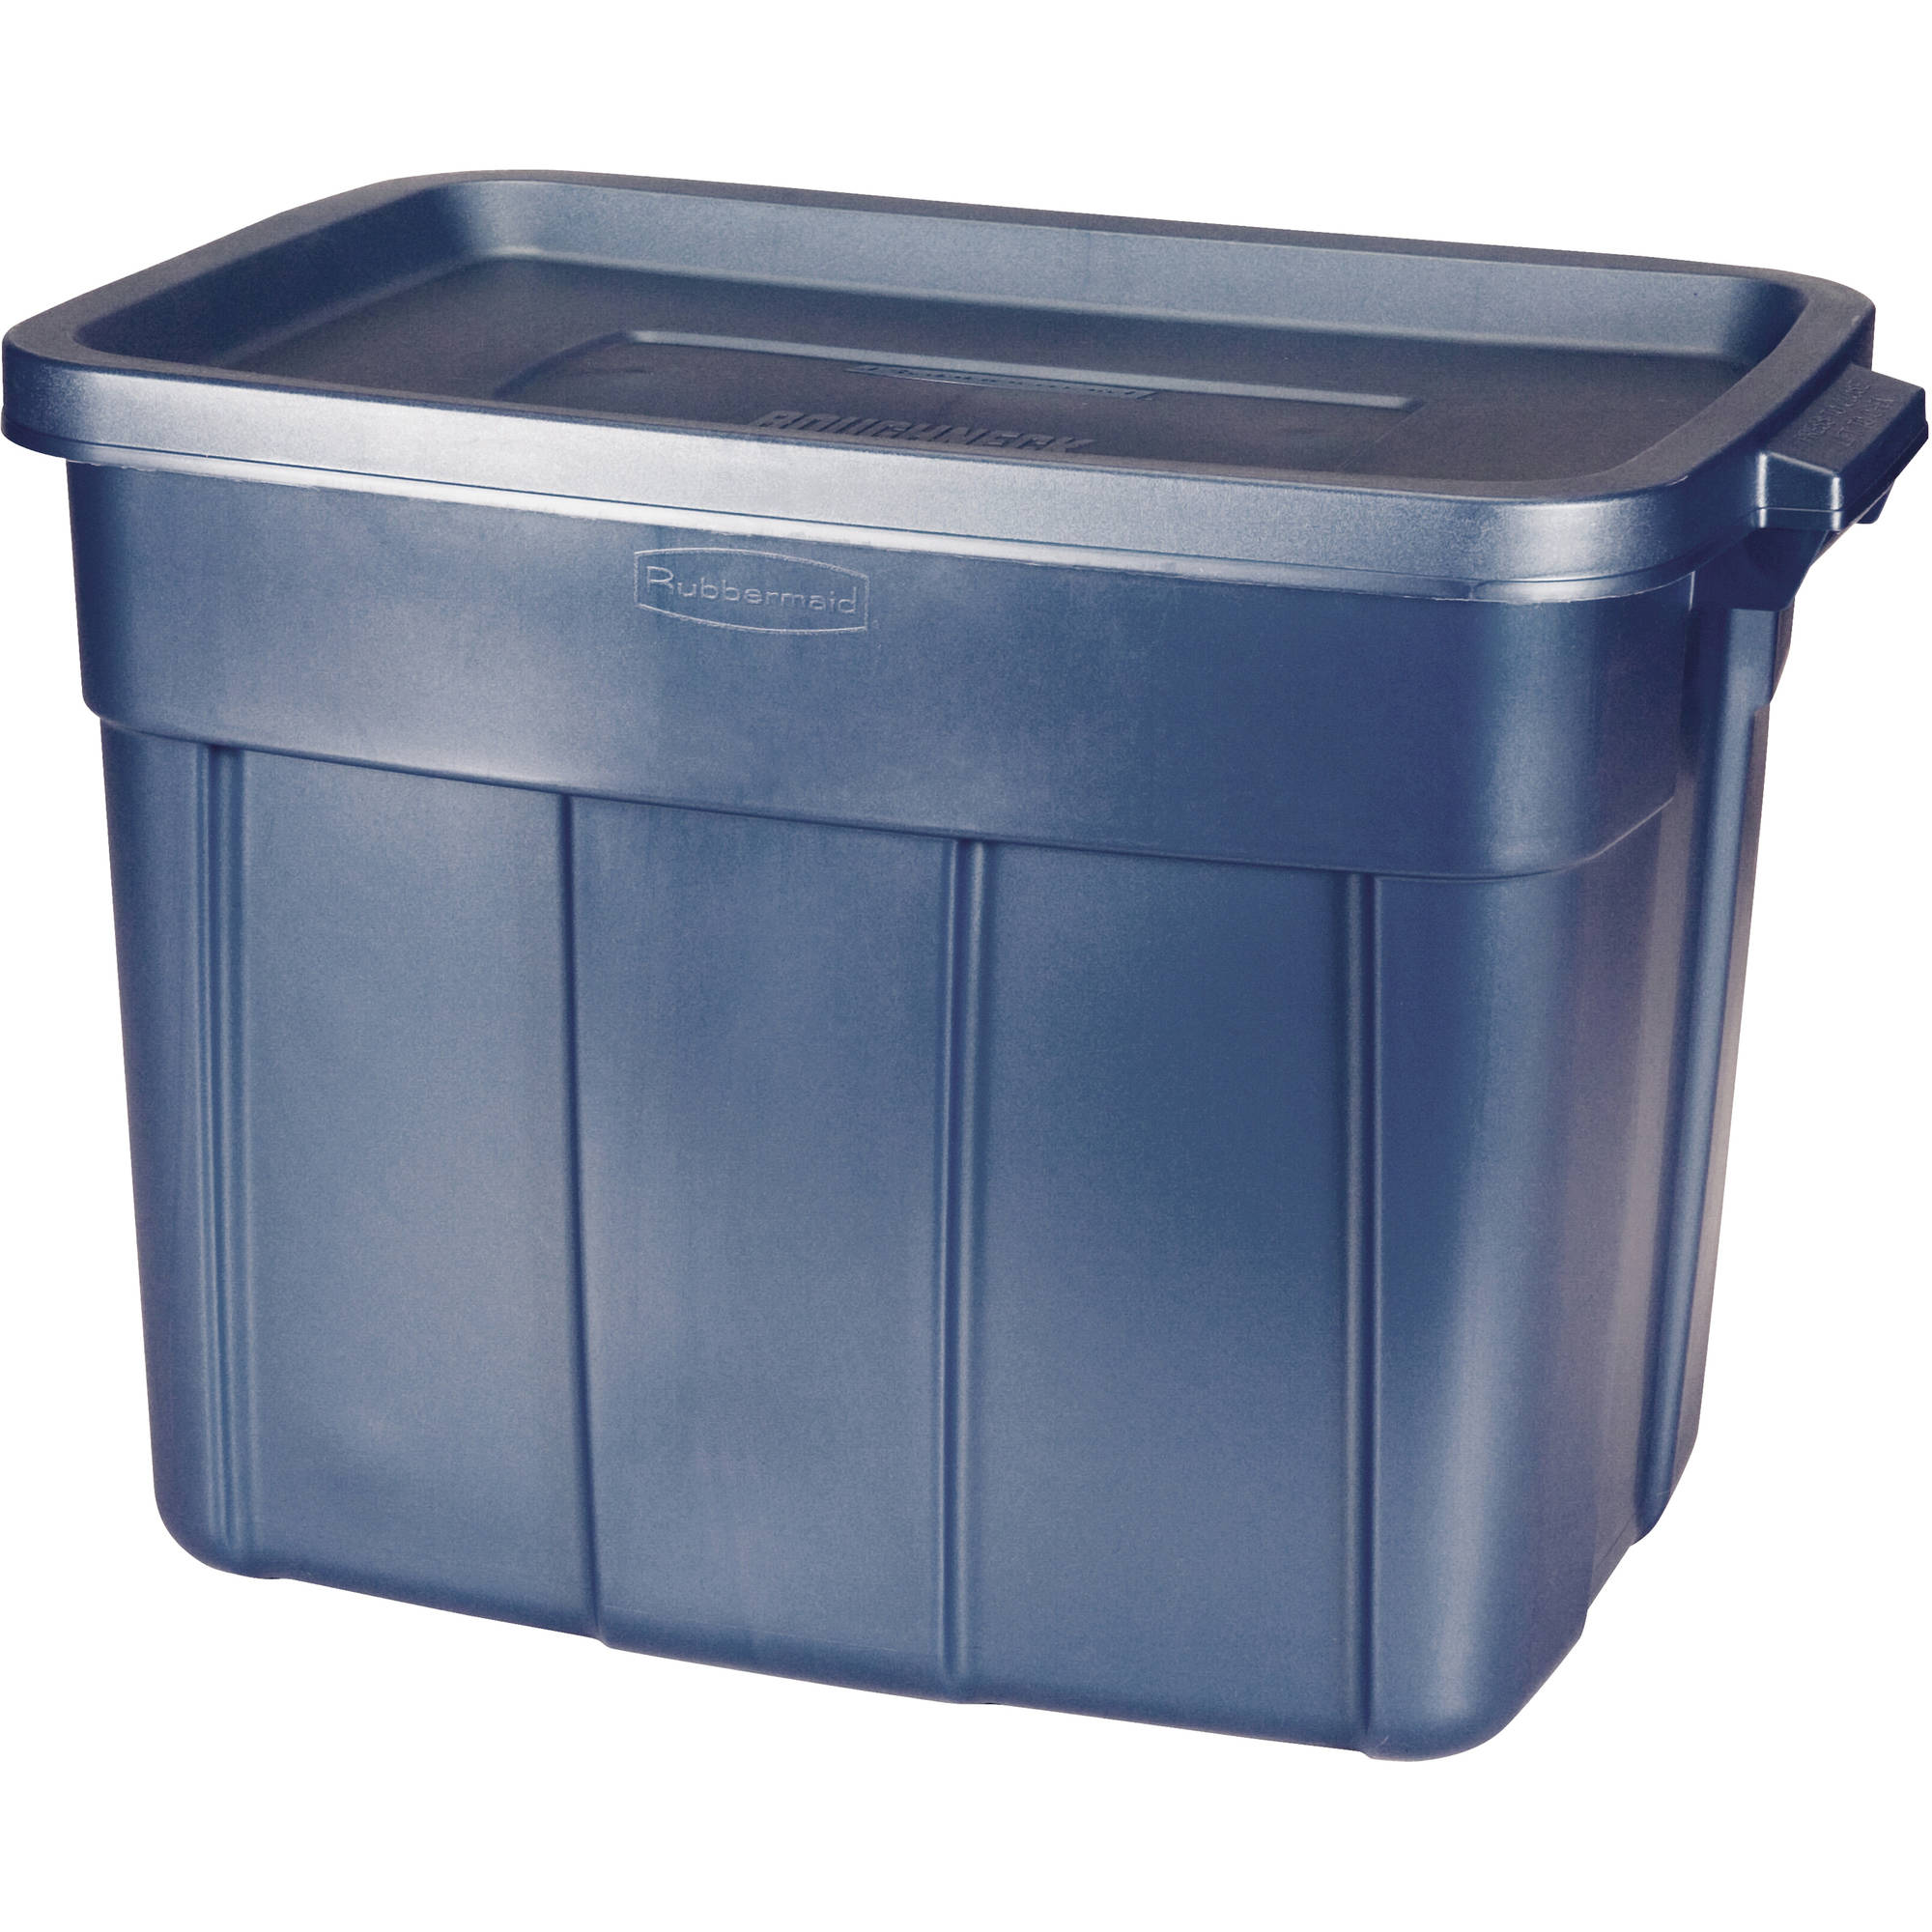 Storage Box, Dark Indigo Metallic (Set Of 12)   Walmart.com